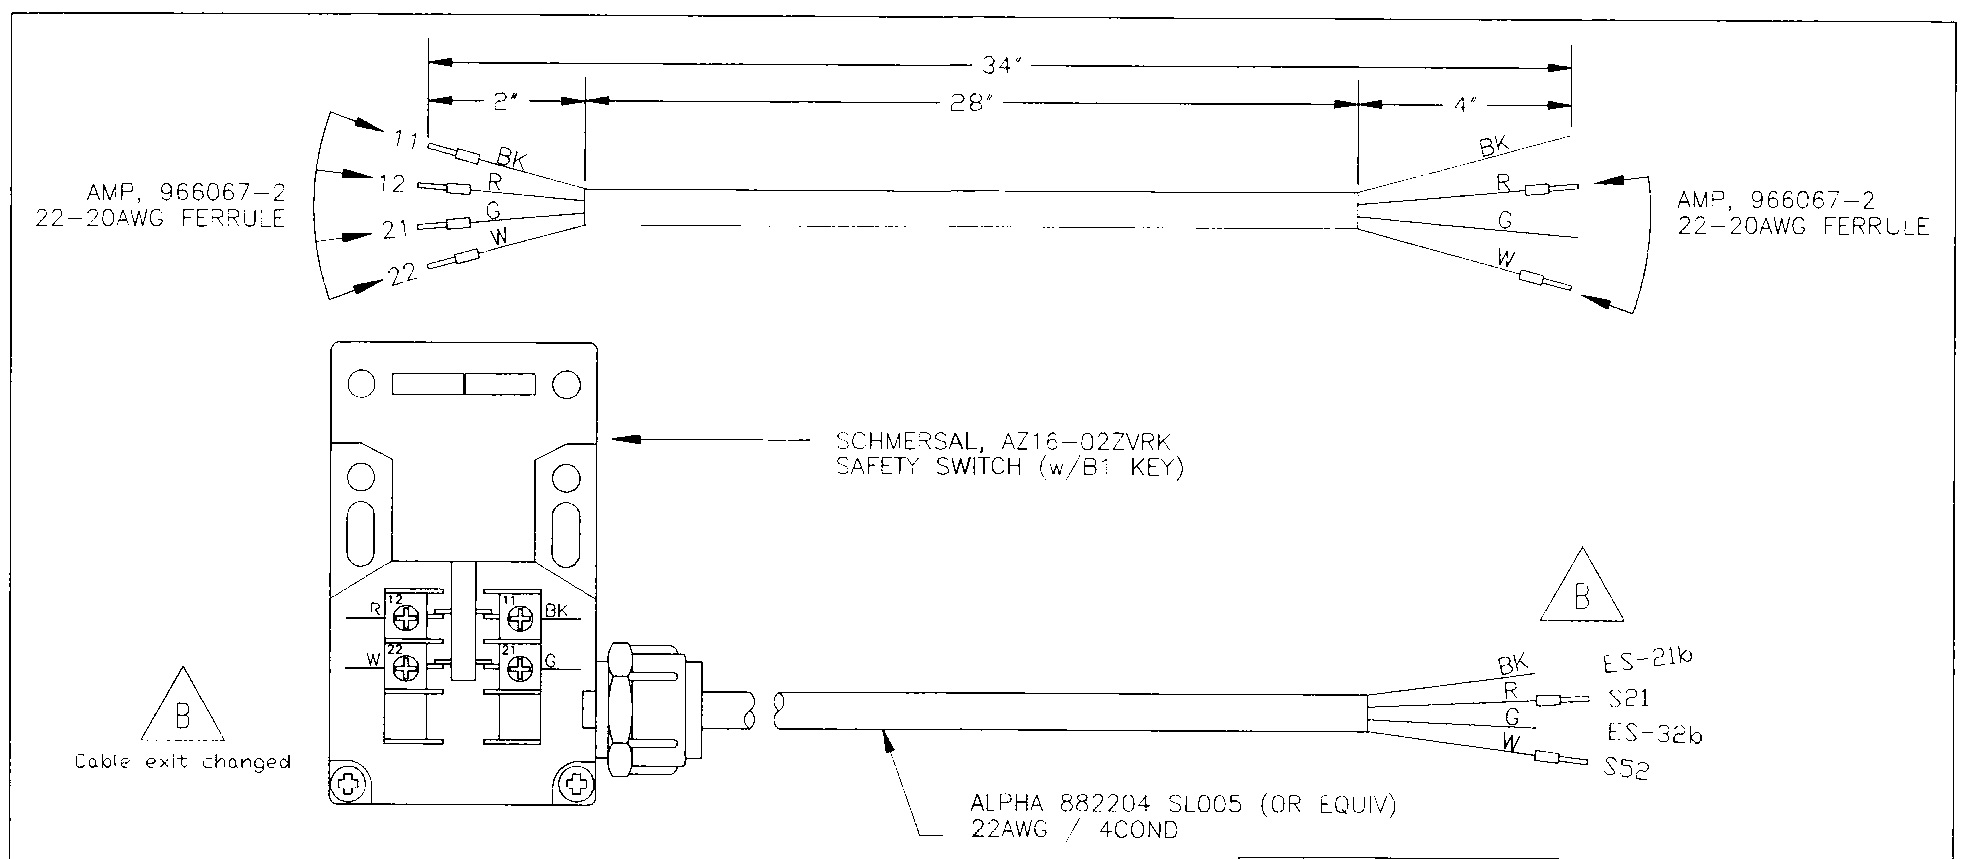 Wiring Harness Drawing Standards - Mobile Home Electrical Service Diagram  for Wiring Diagram SchematicsWiring Diagram Schematics